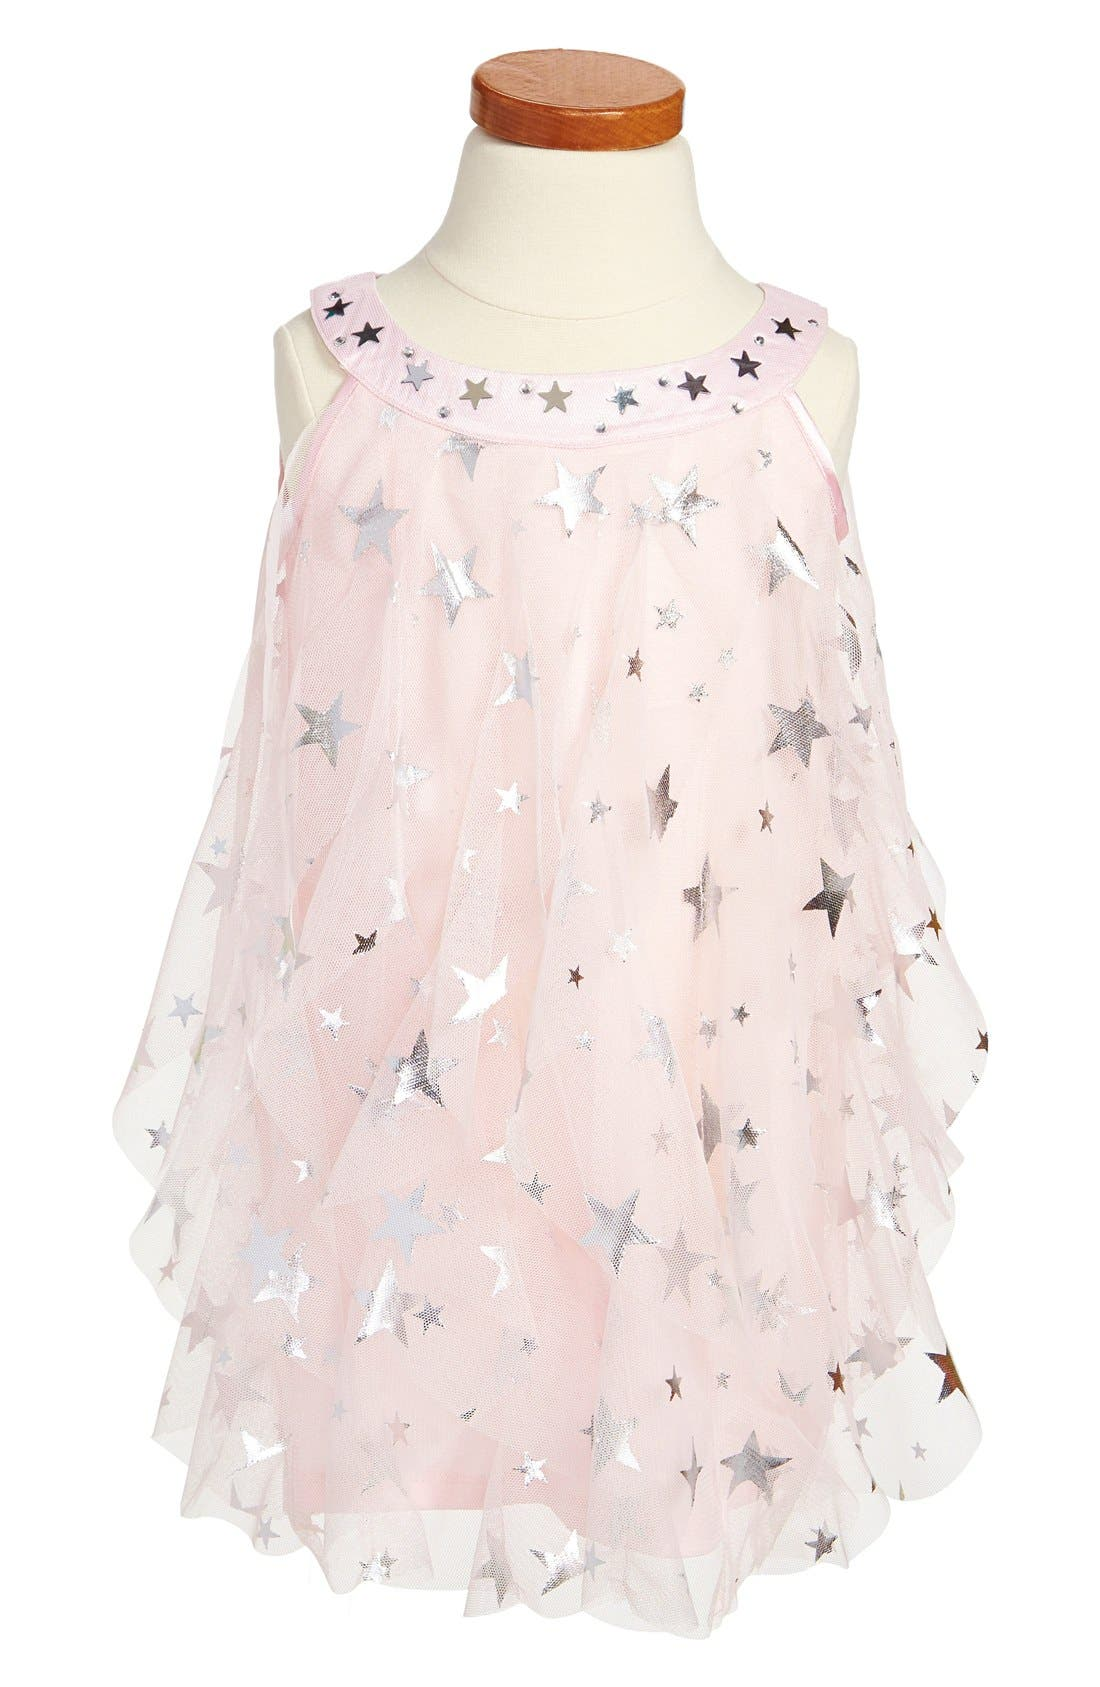 Main Image - Biscotti 'Starry Eyed' Ruffle Trapeze Dress (Toddler Girls)